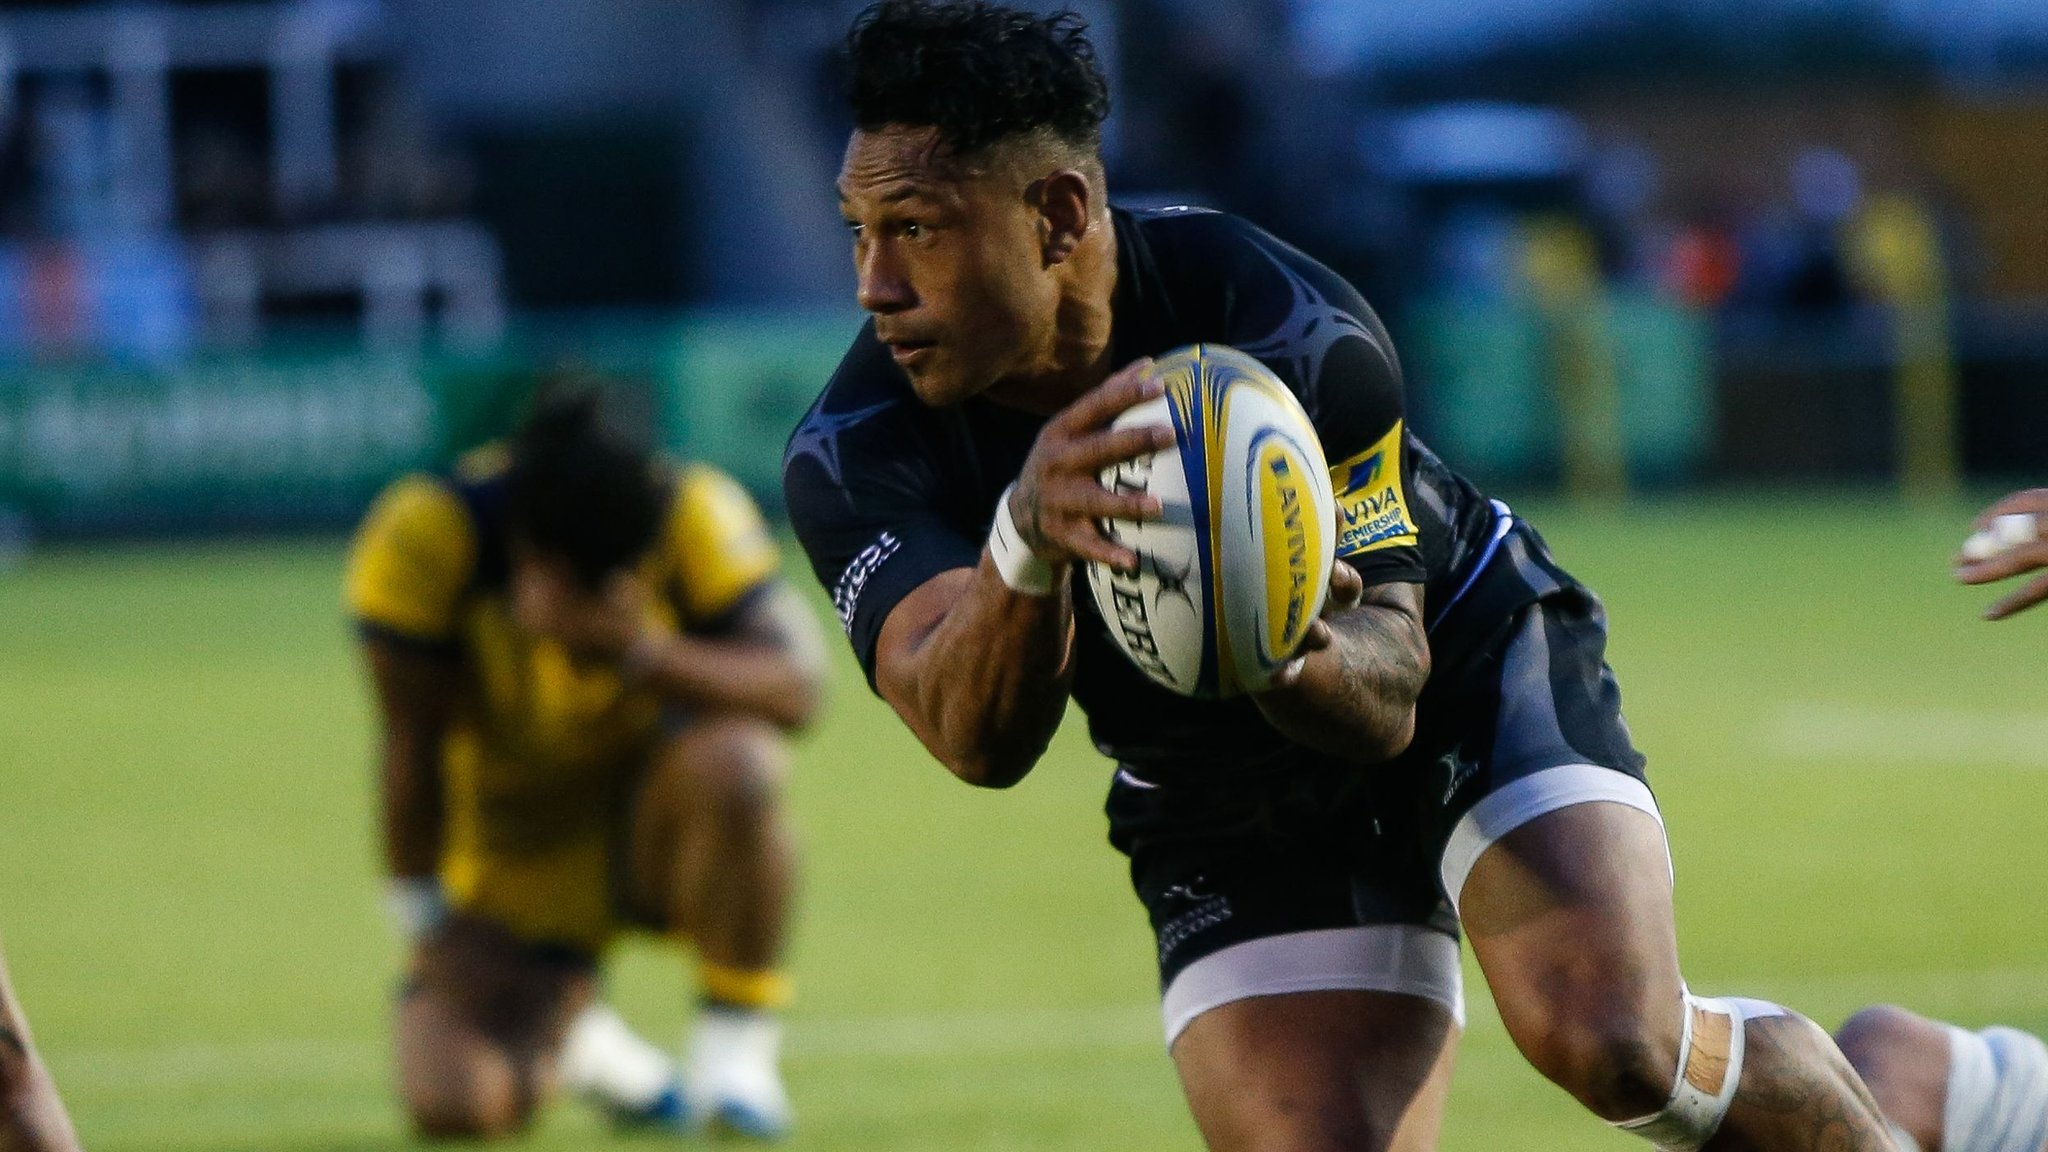 Newcastle edge Worcester to keep slim Champions Cup hopes alive